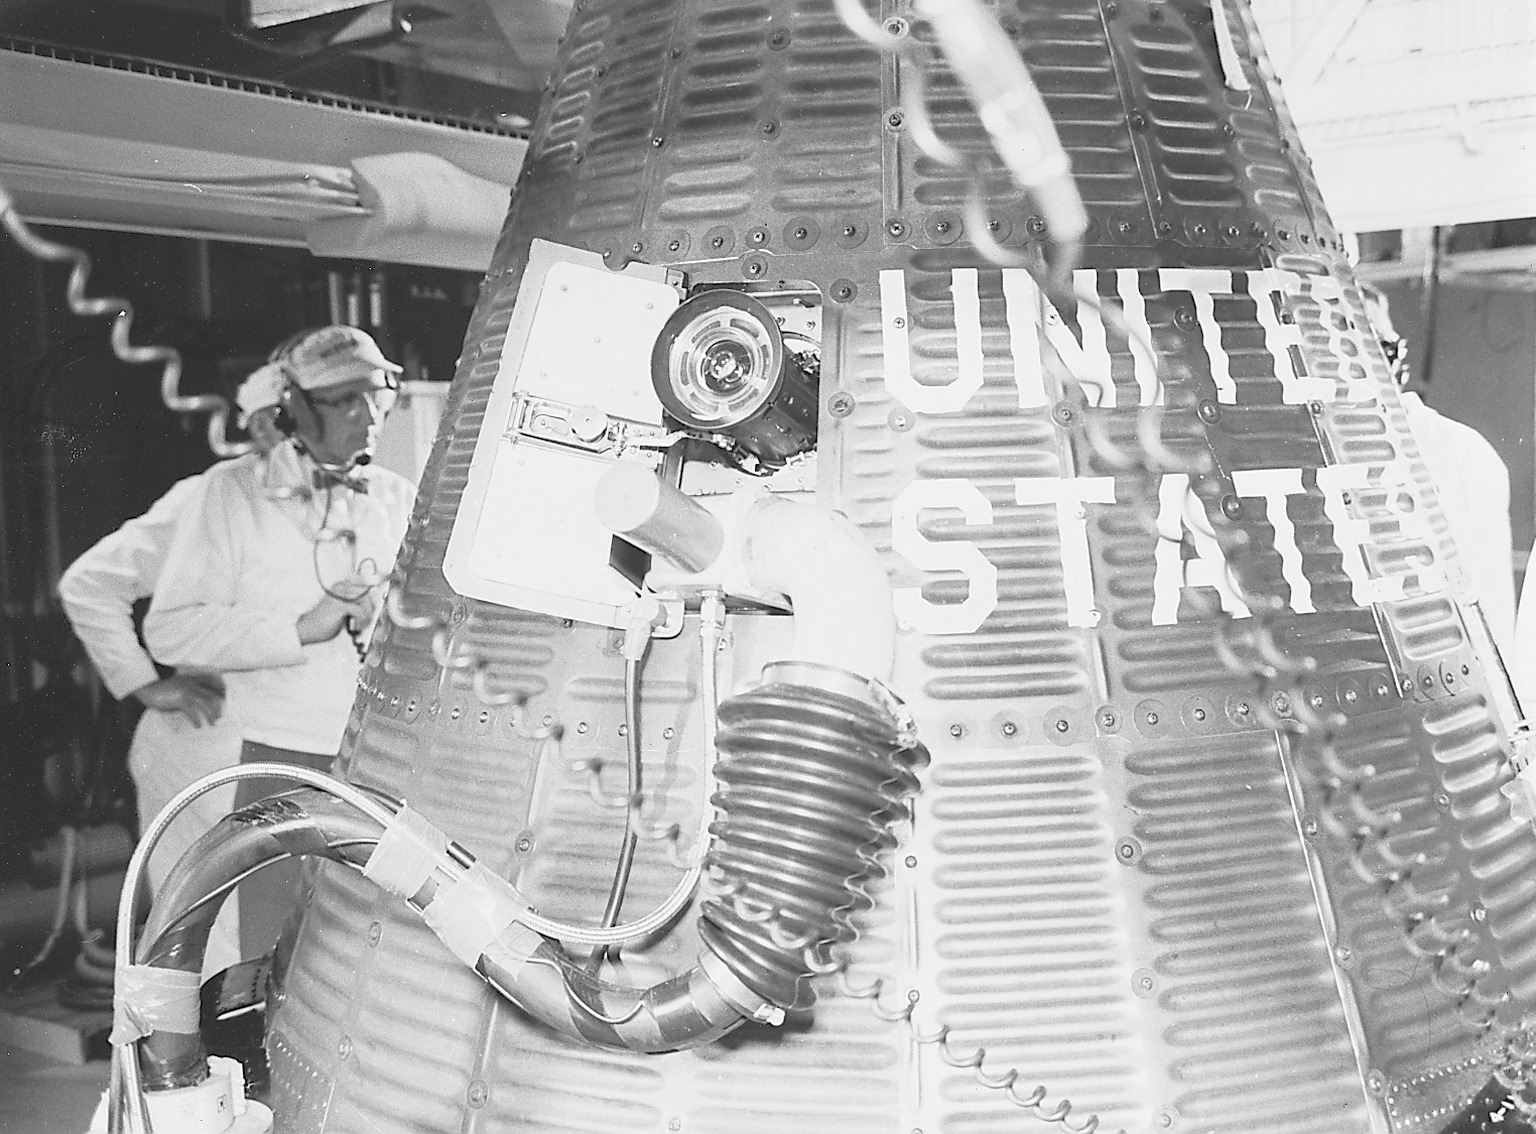 Mercury-Redstone MR-4/Liberty Bell 7 - (21.07.1961) Liberty_Bell_7_spacecraft_fueling_S61-03705